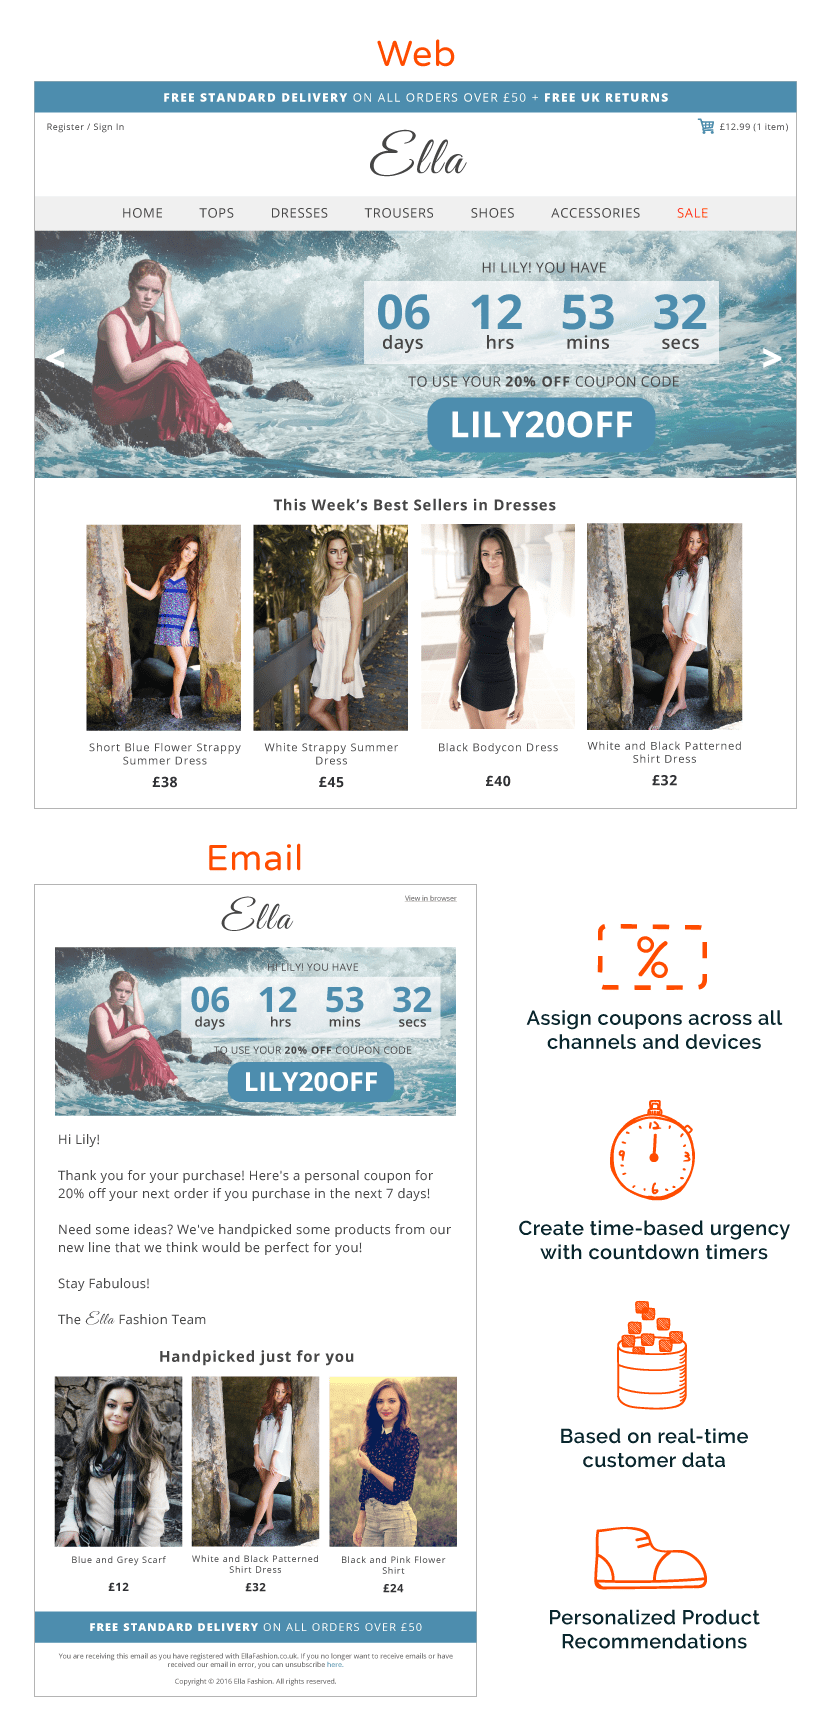 Personalized coupon shown across web and email  Create seamless congruent customer experience  Pair with personalized recommendations across channels